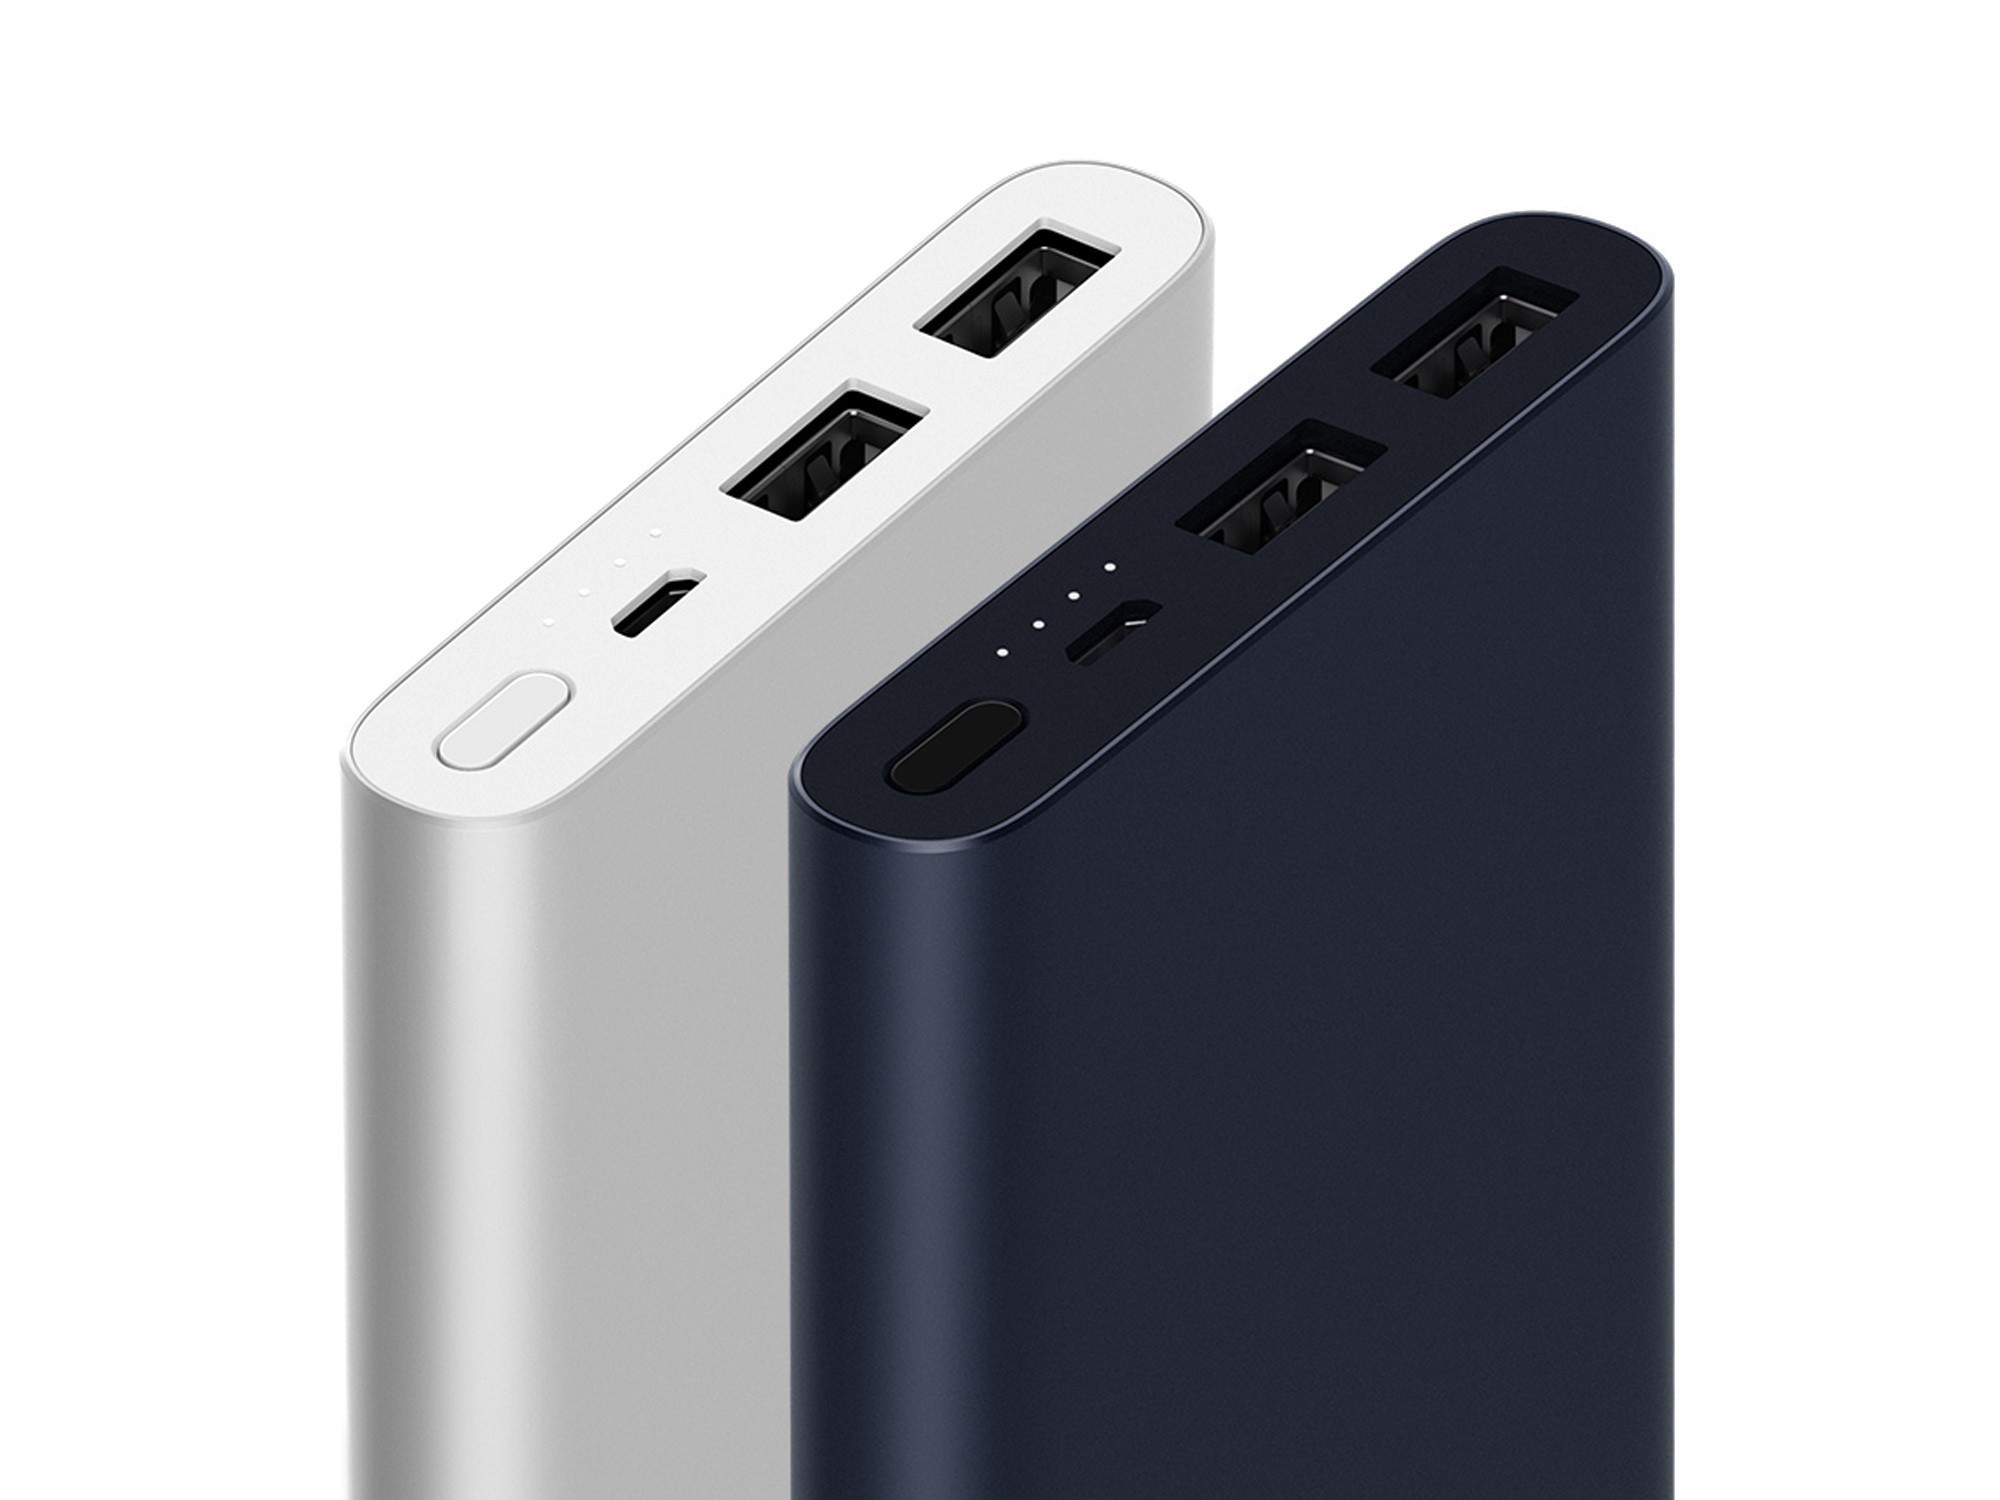 Xiaomi Power Bank 10 000 mAh Mi 2i Quick Charge, 2 USB - 2018 model